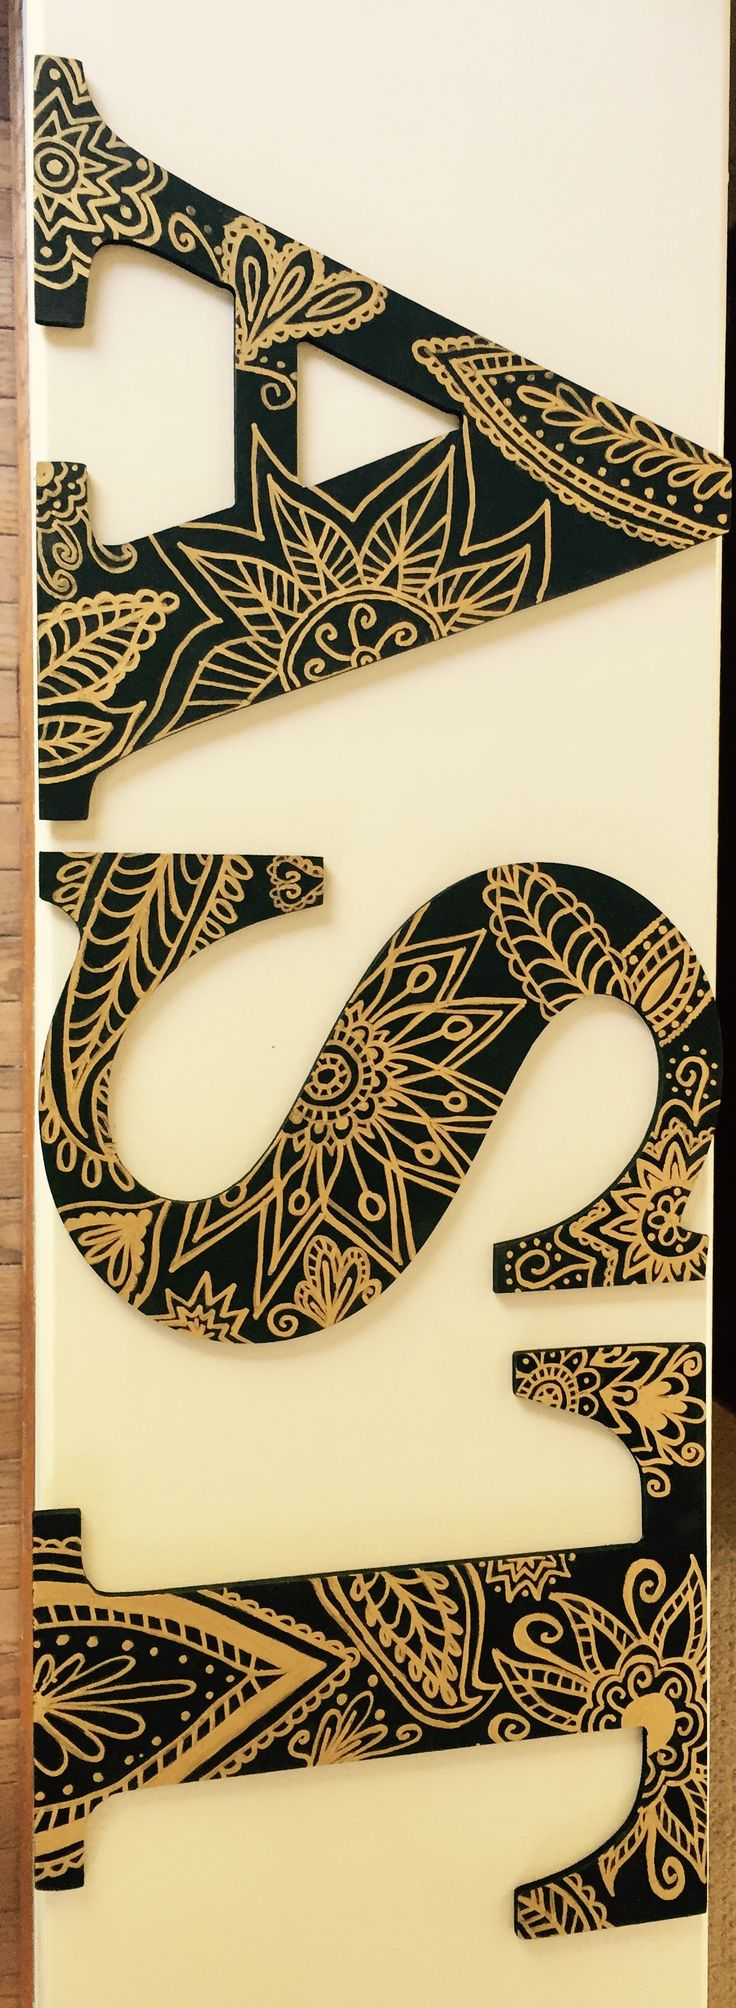 Black paint and a gold paint pen #sororityletters #letters #littlecrafting #little #classy #floral #mandala #gold #black #detailed #alphasigmatau #ast #sorority #crafting #diy